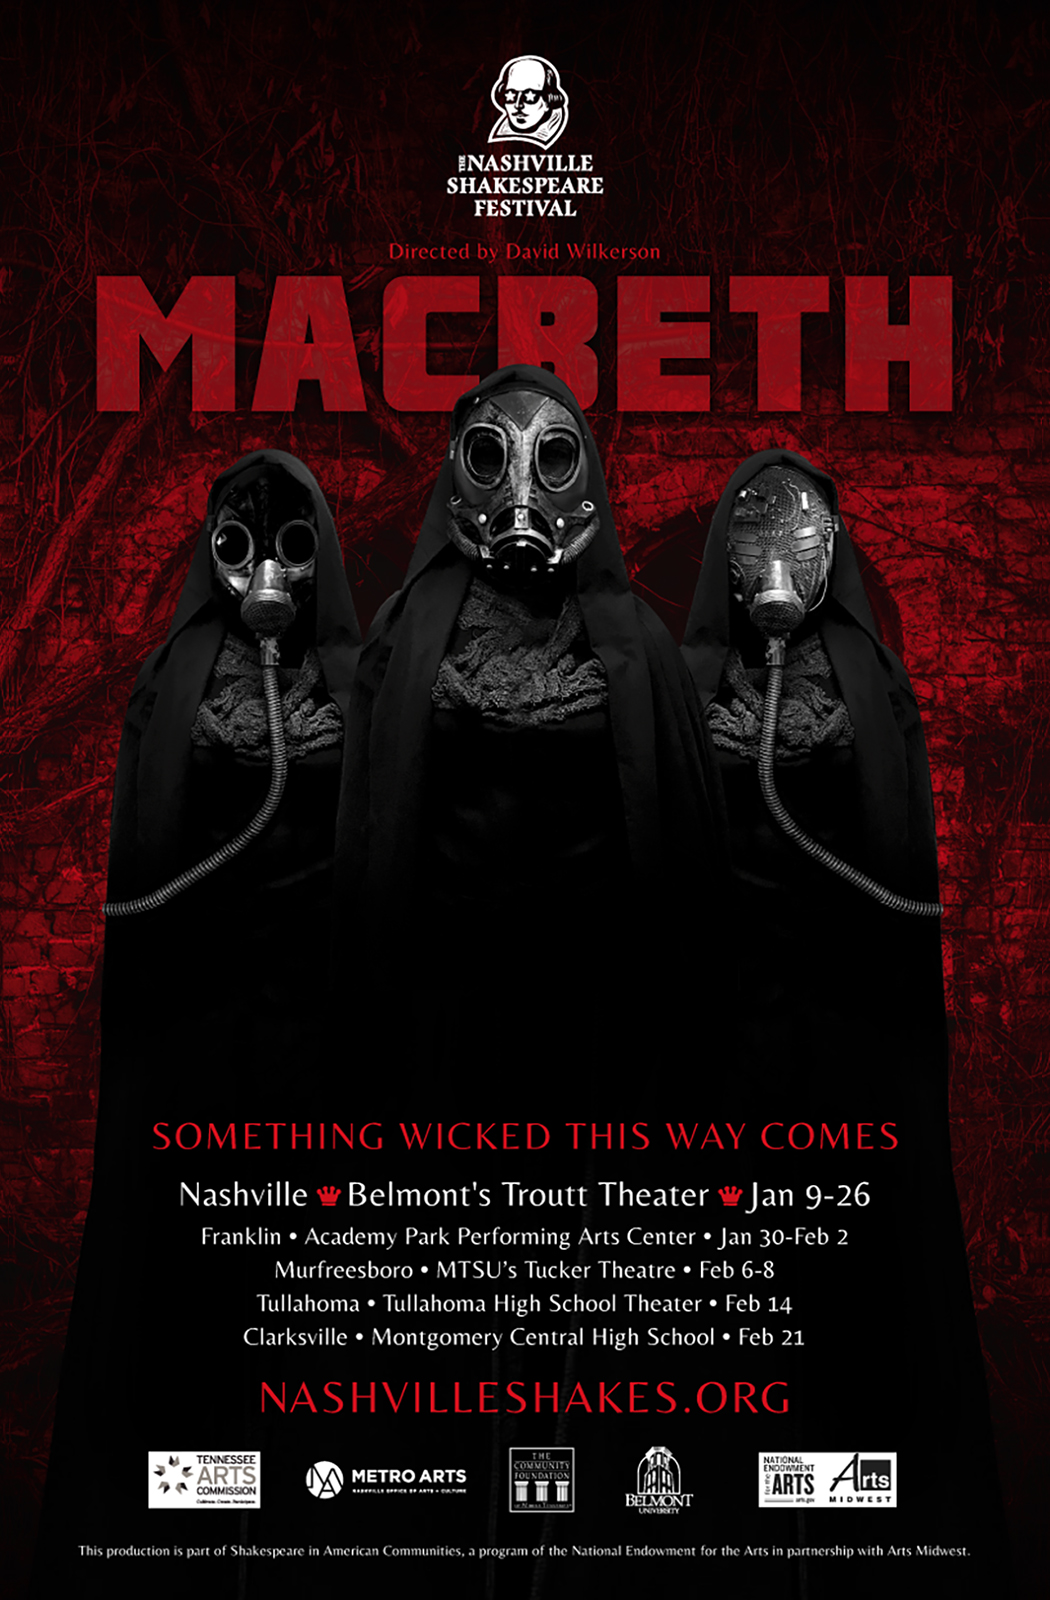 Nashville Shakespeare Festival Macbeth poster